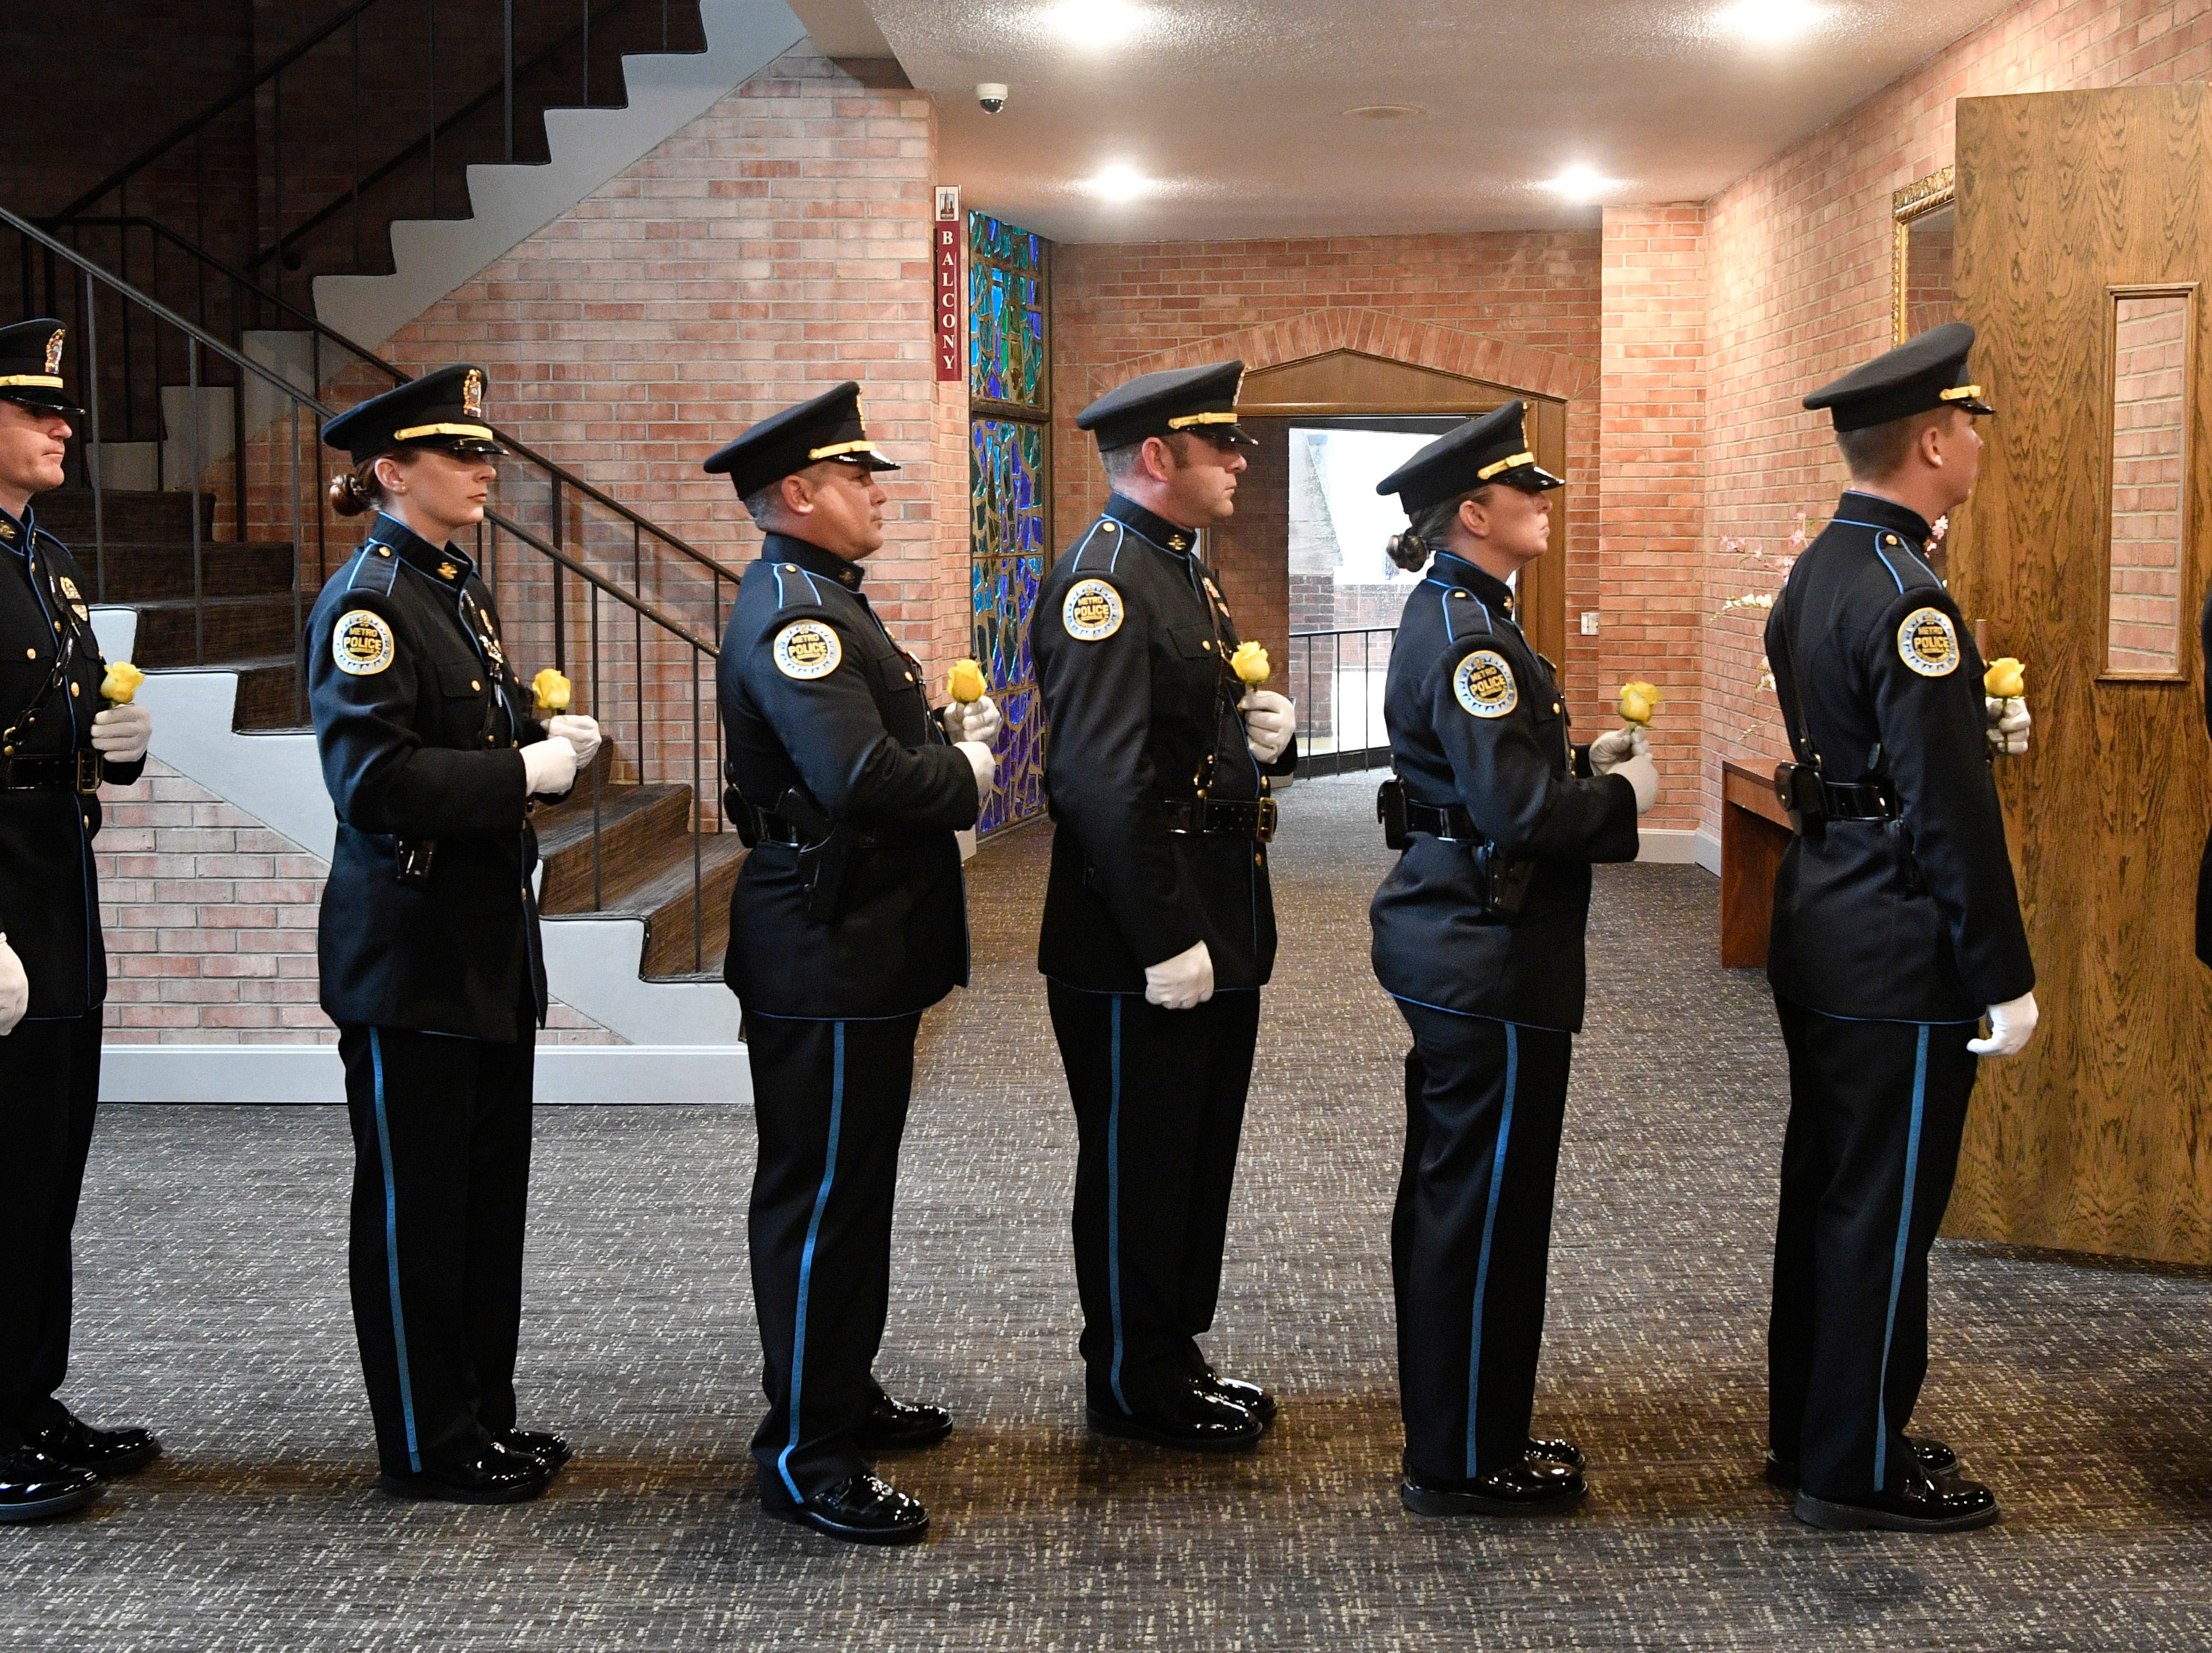 Members of police Drill and Ceremony Team carry a yellow rose each in honor of a fallen officer at the annual memorial service honoring Nashville's police officers who have died in service to the city Thursday, May 9, 2019, in Nashville, Tenn.